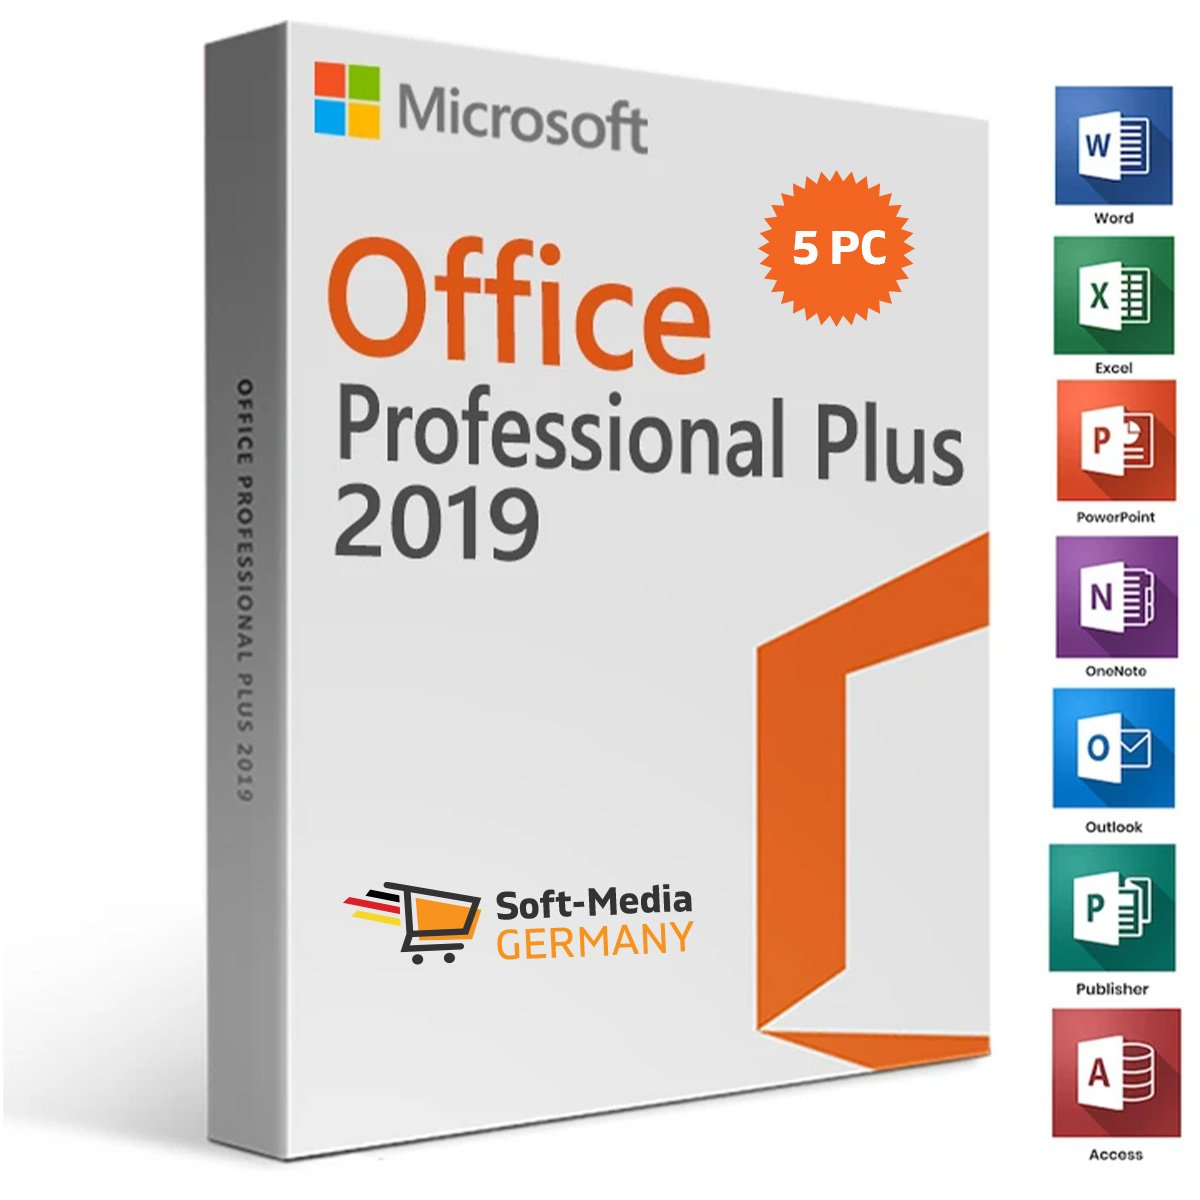 Office Professional Plus 5 PC